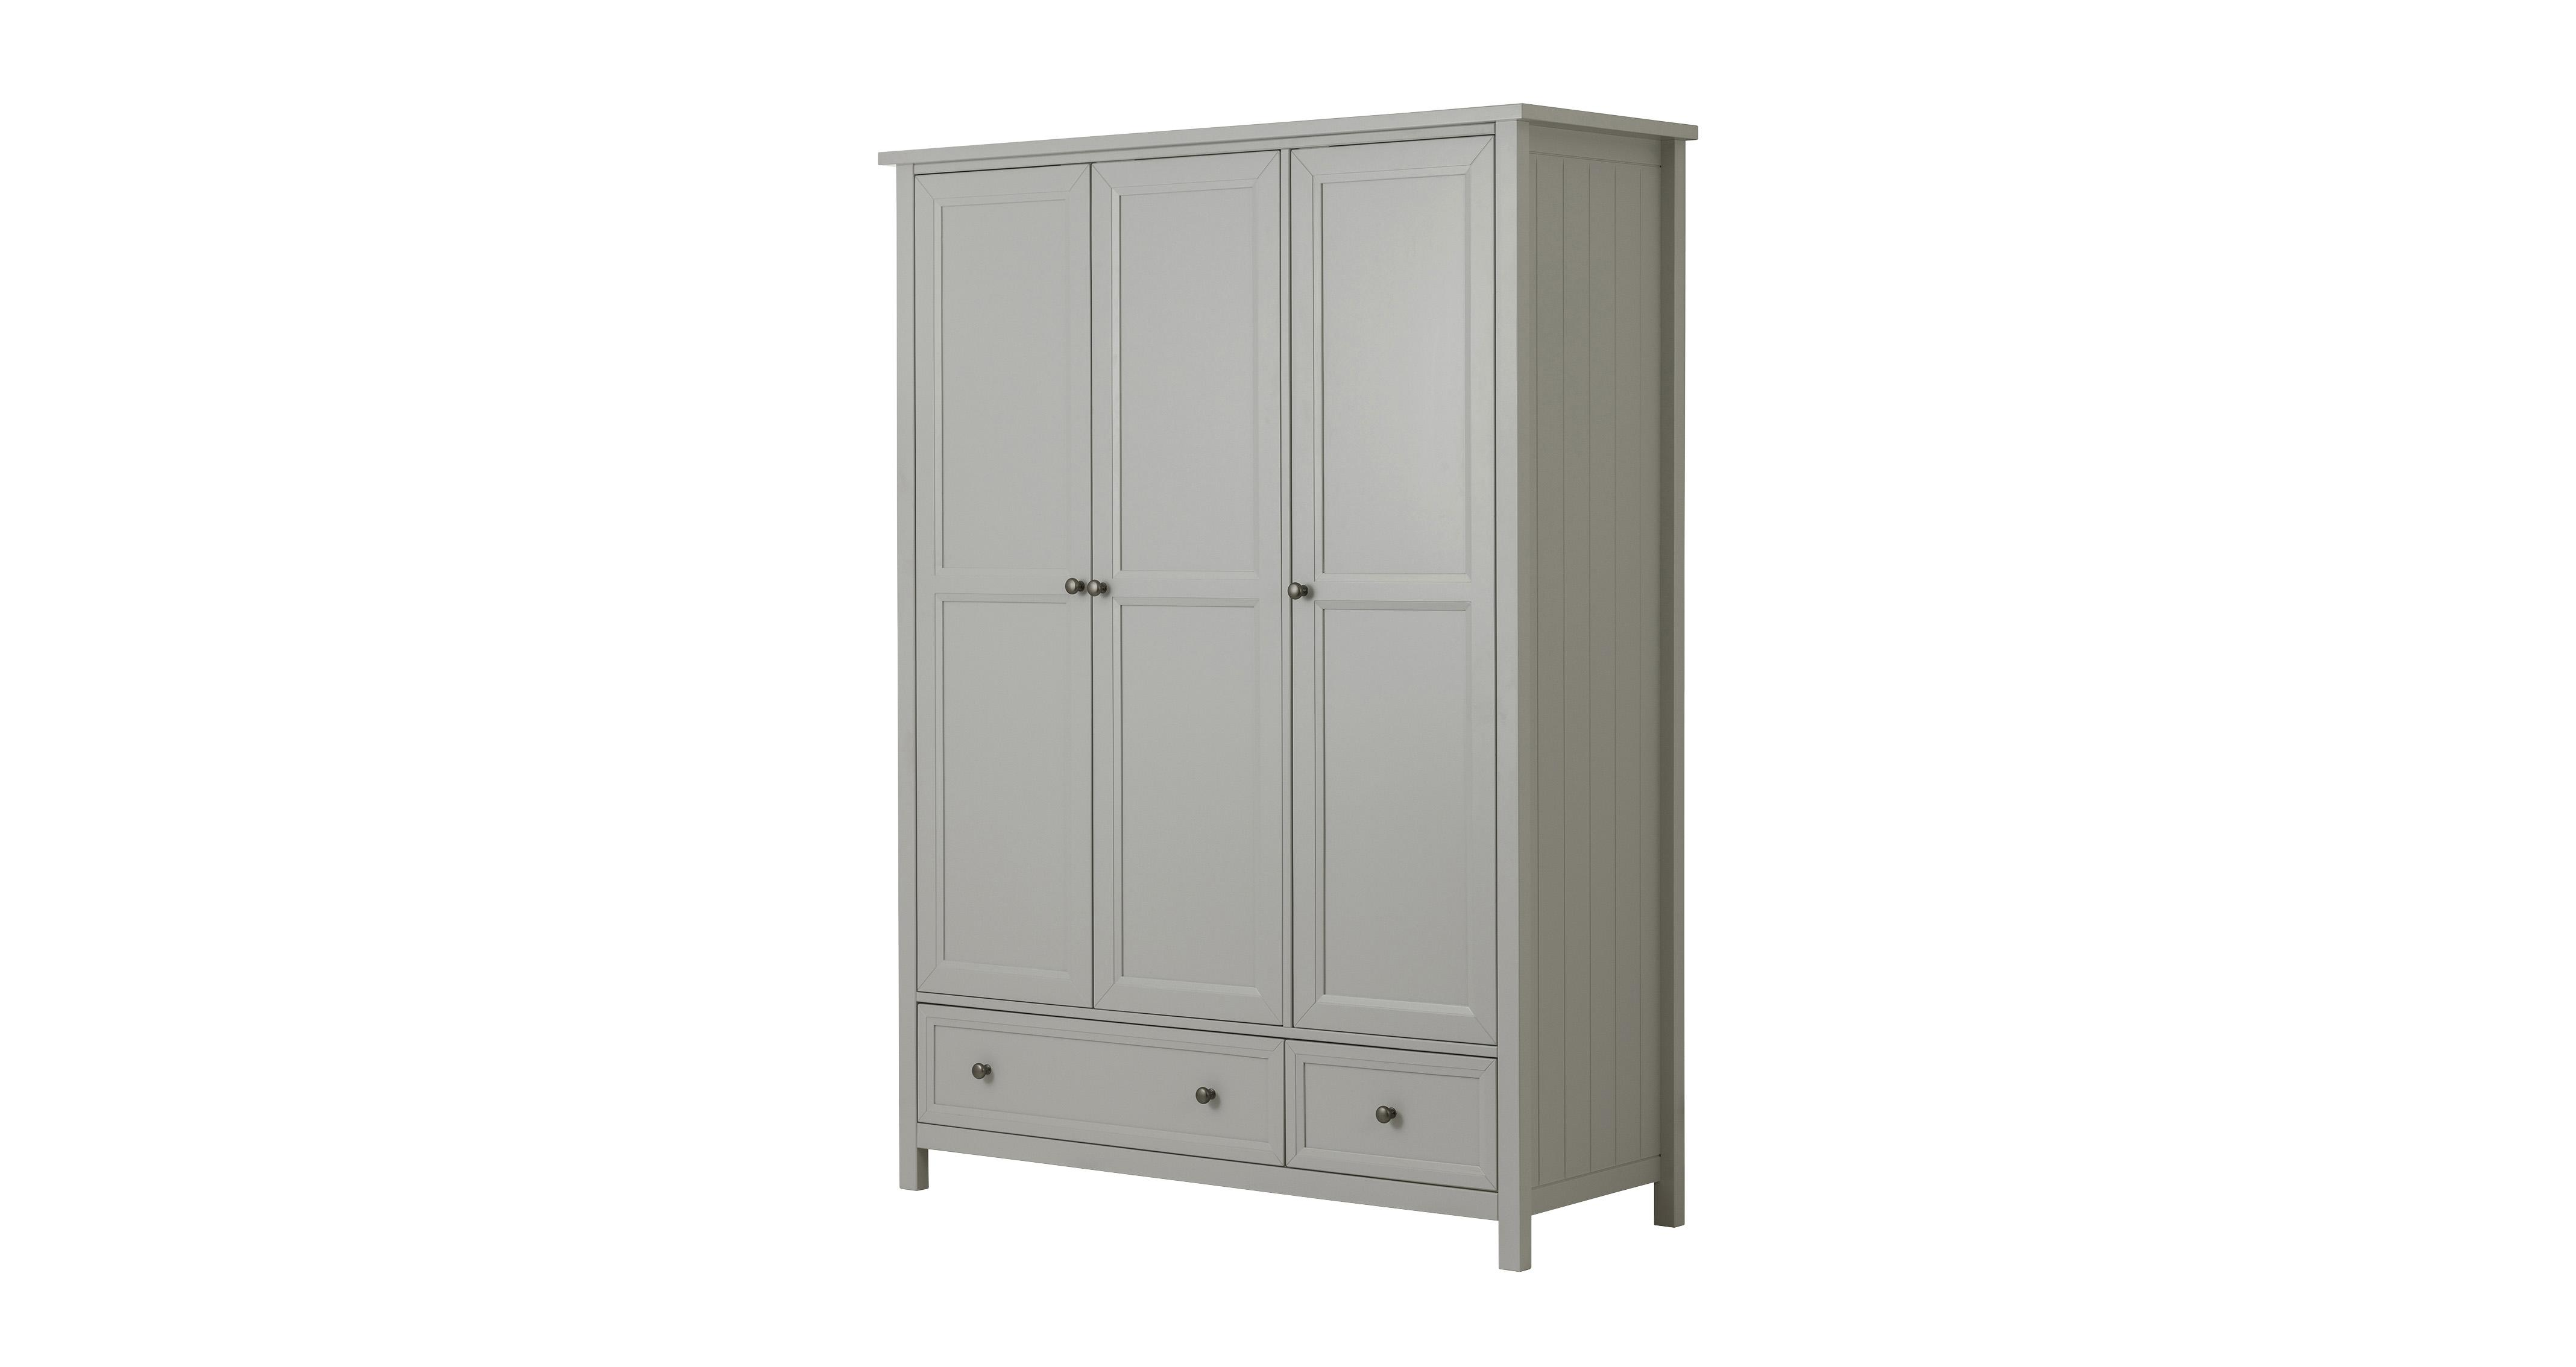 contract assembled goose cupboard graviti wardrobe stationery door grey